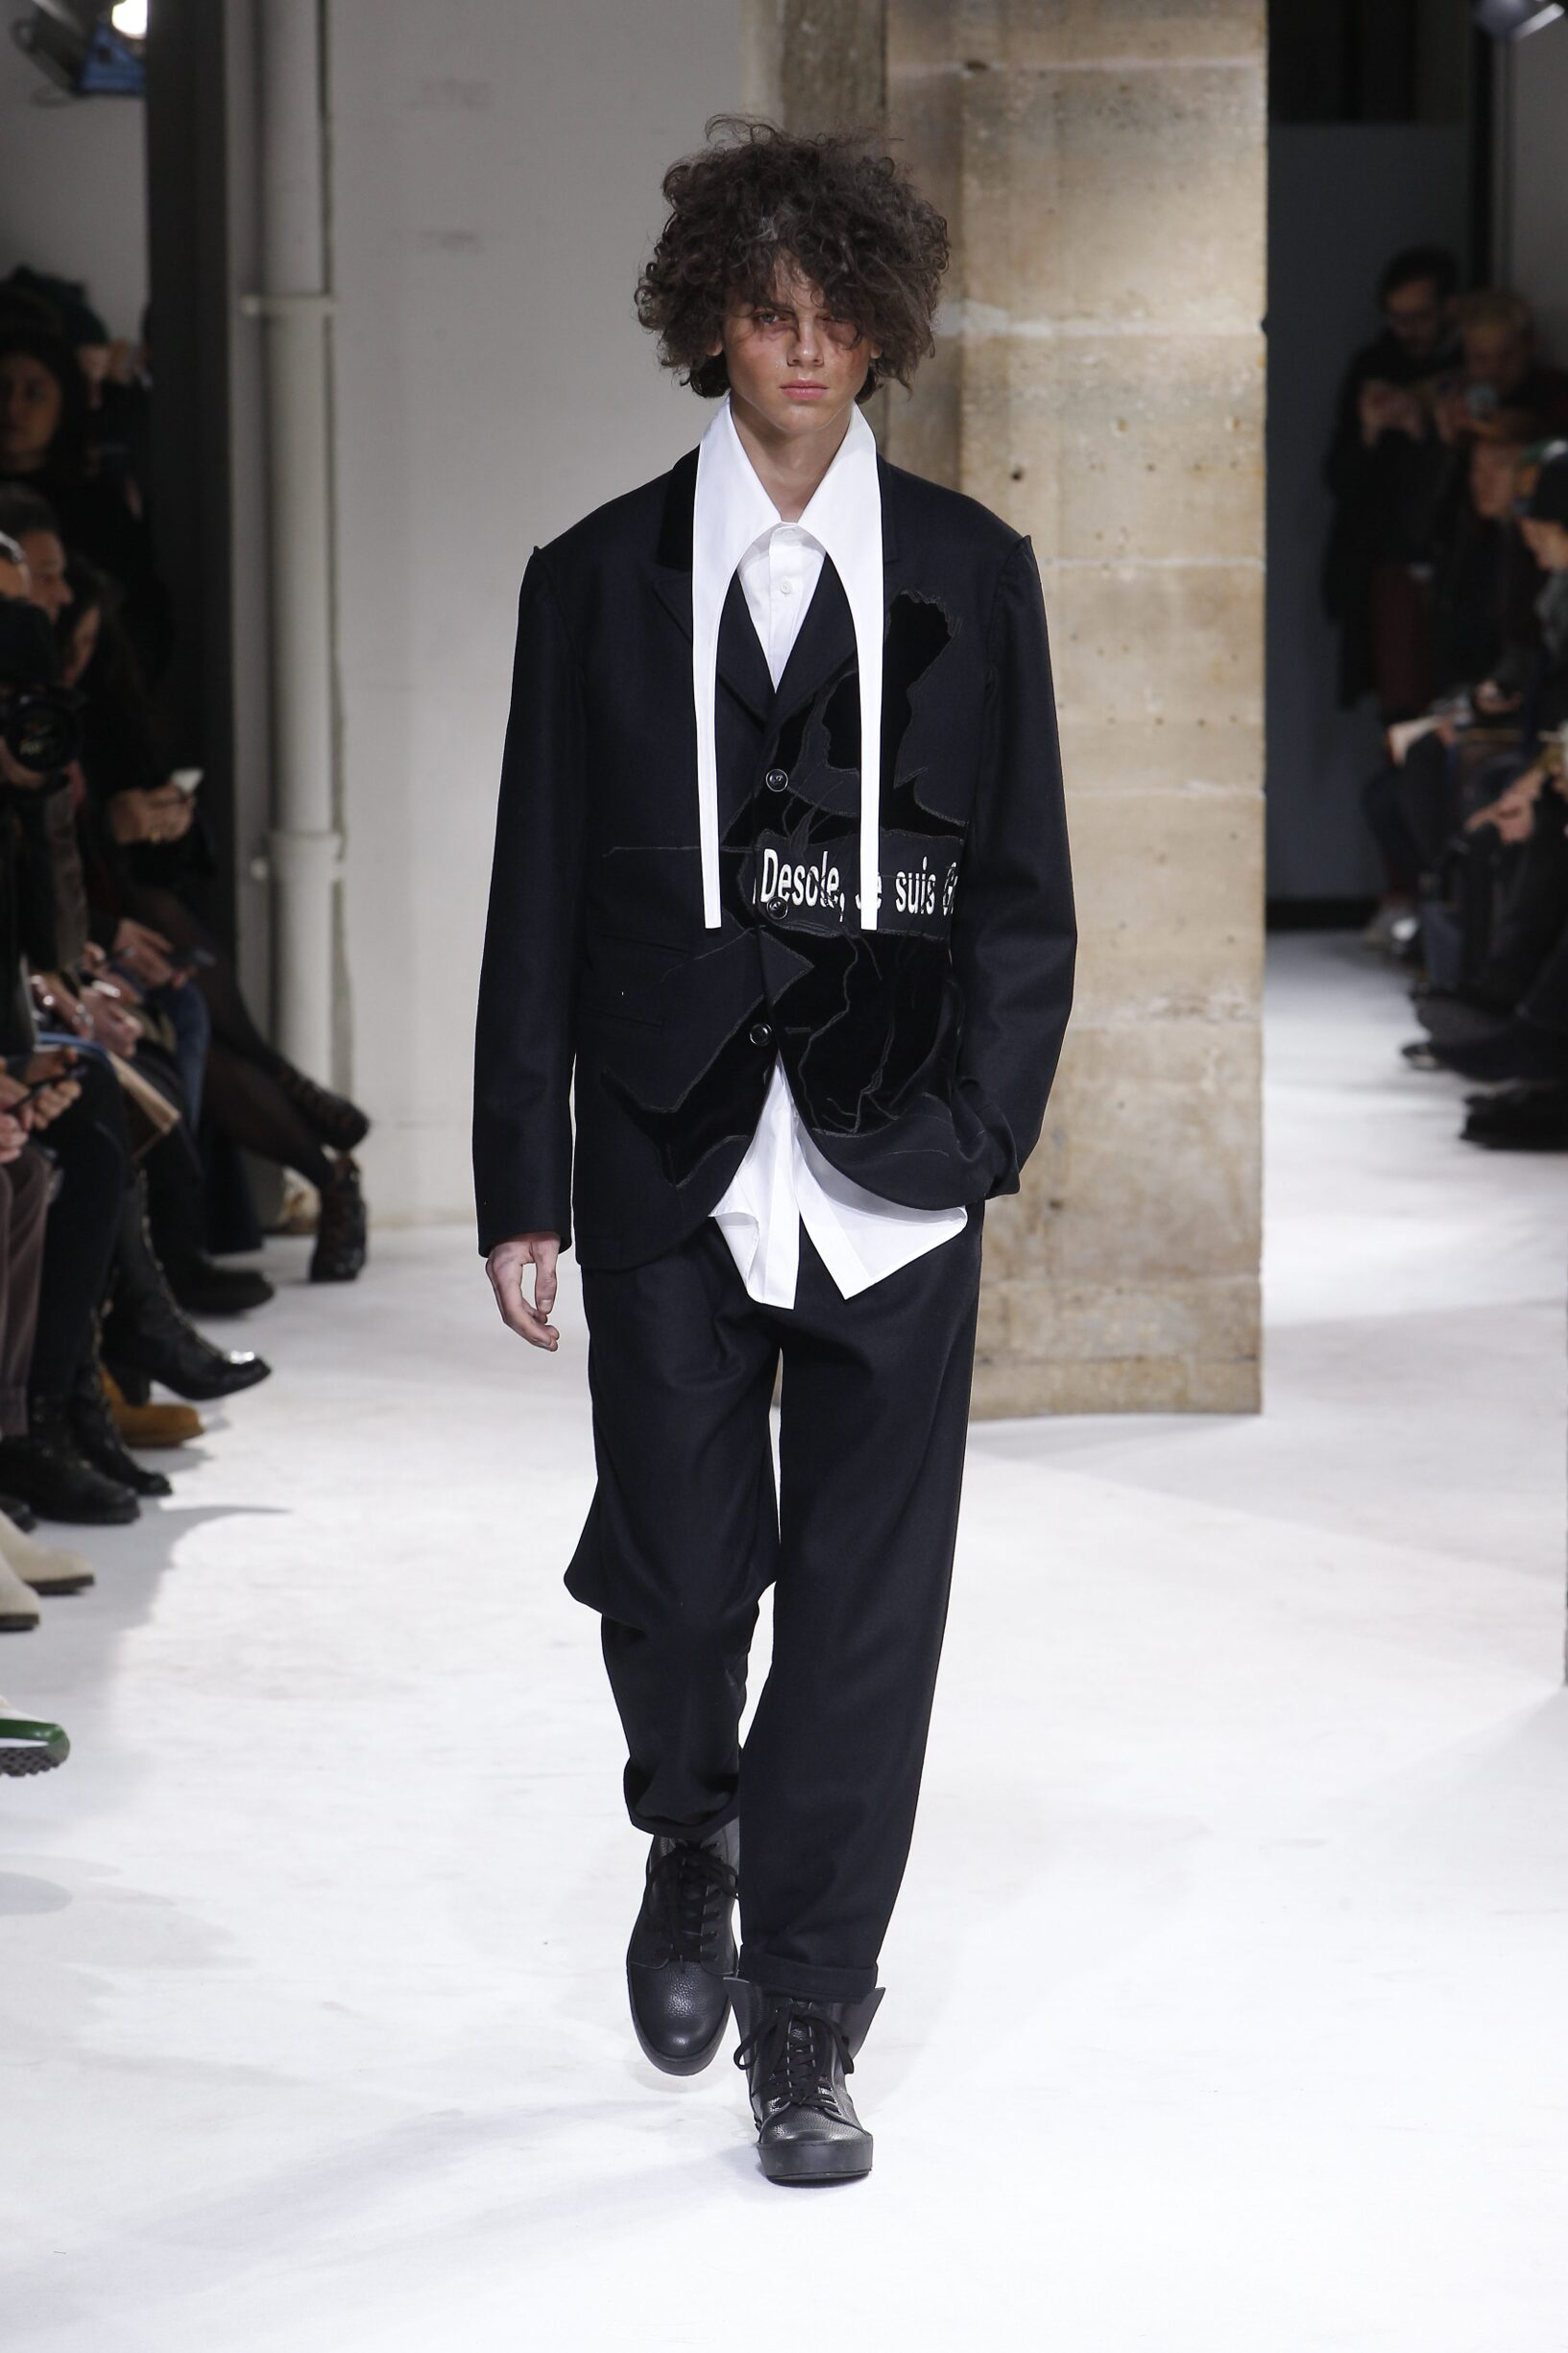 Runway Yohji Yamamoto Fall Winter 2017 Men's Collection Paris Fashion Week